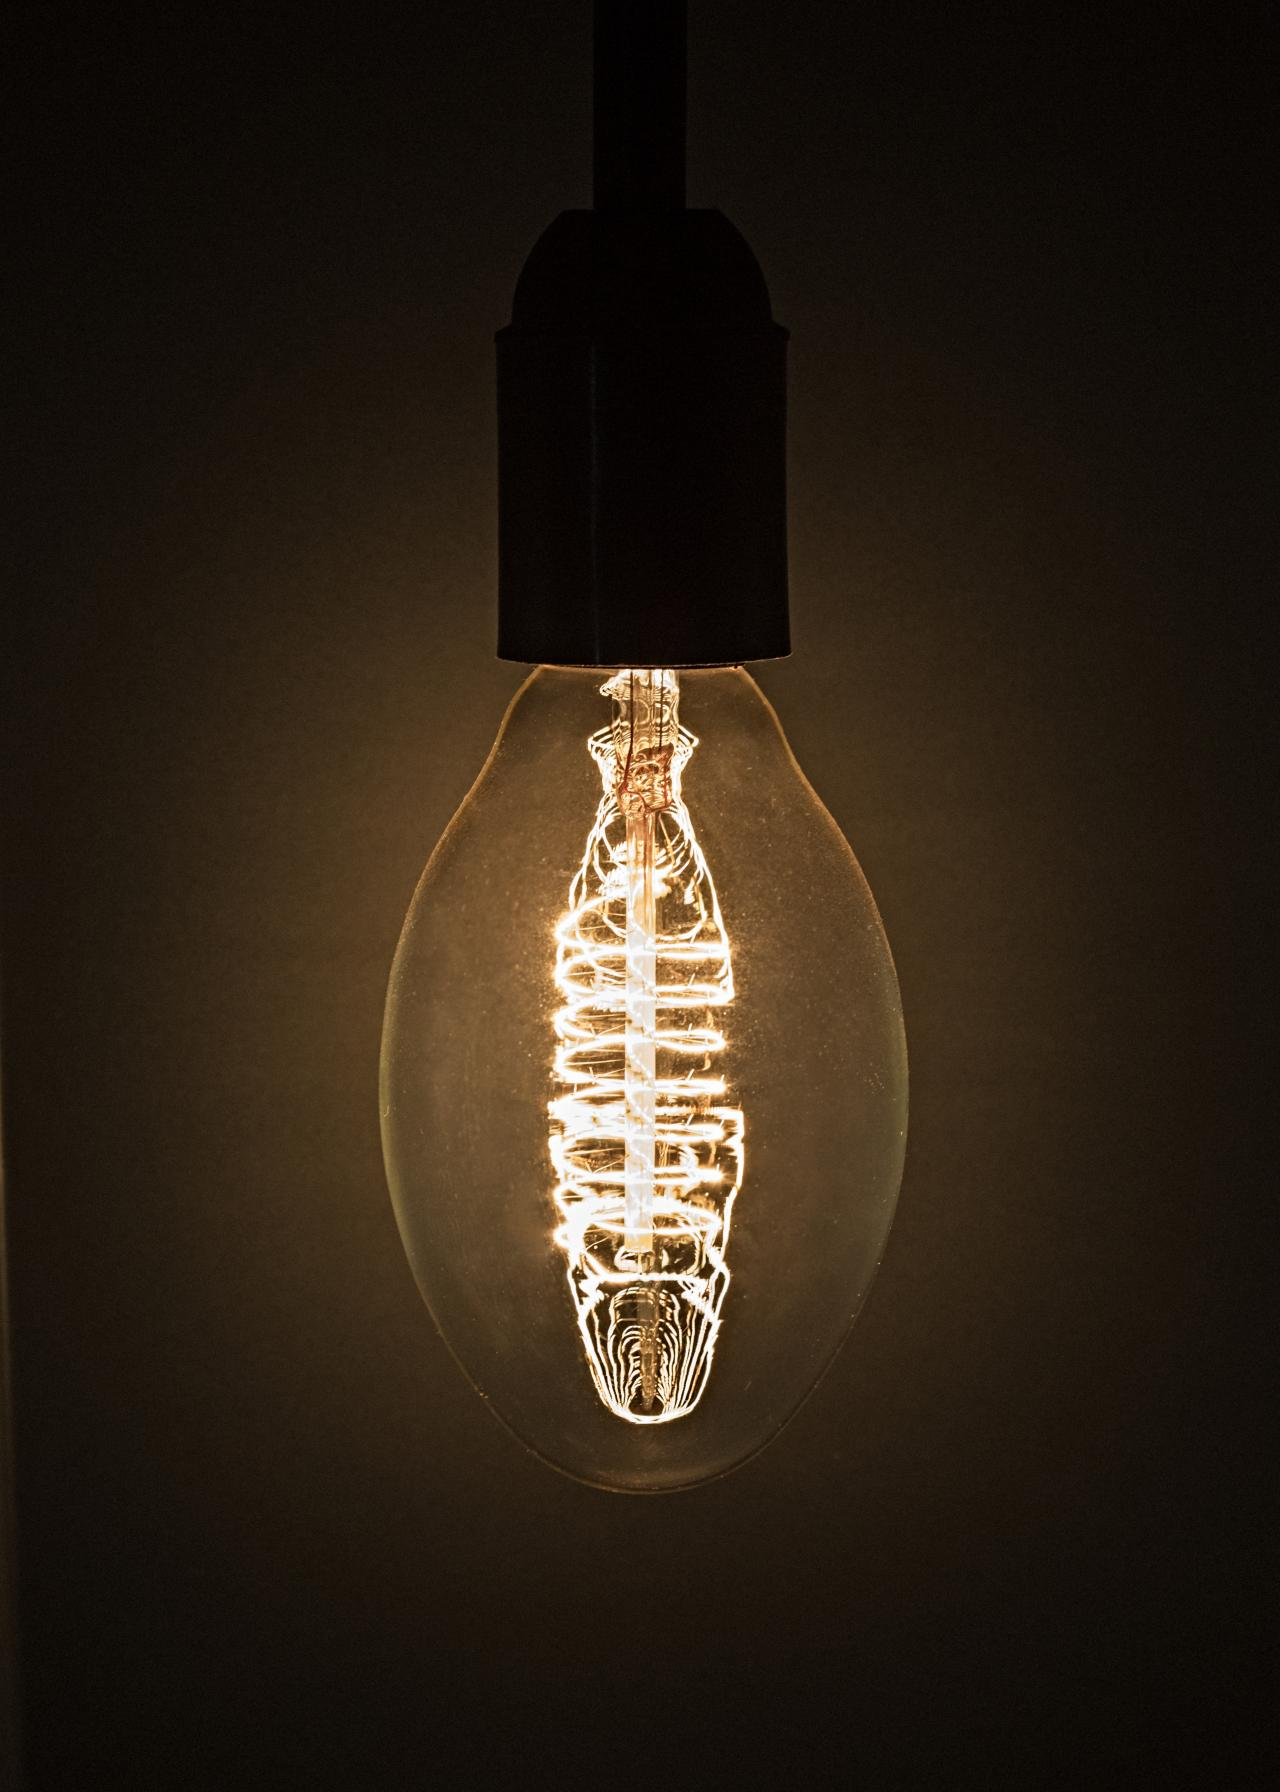 burning light bulb